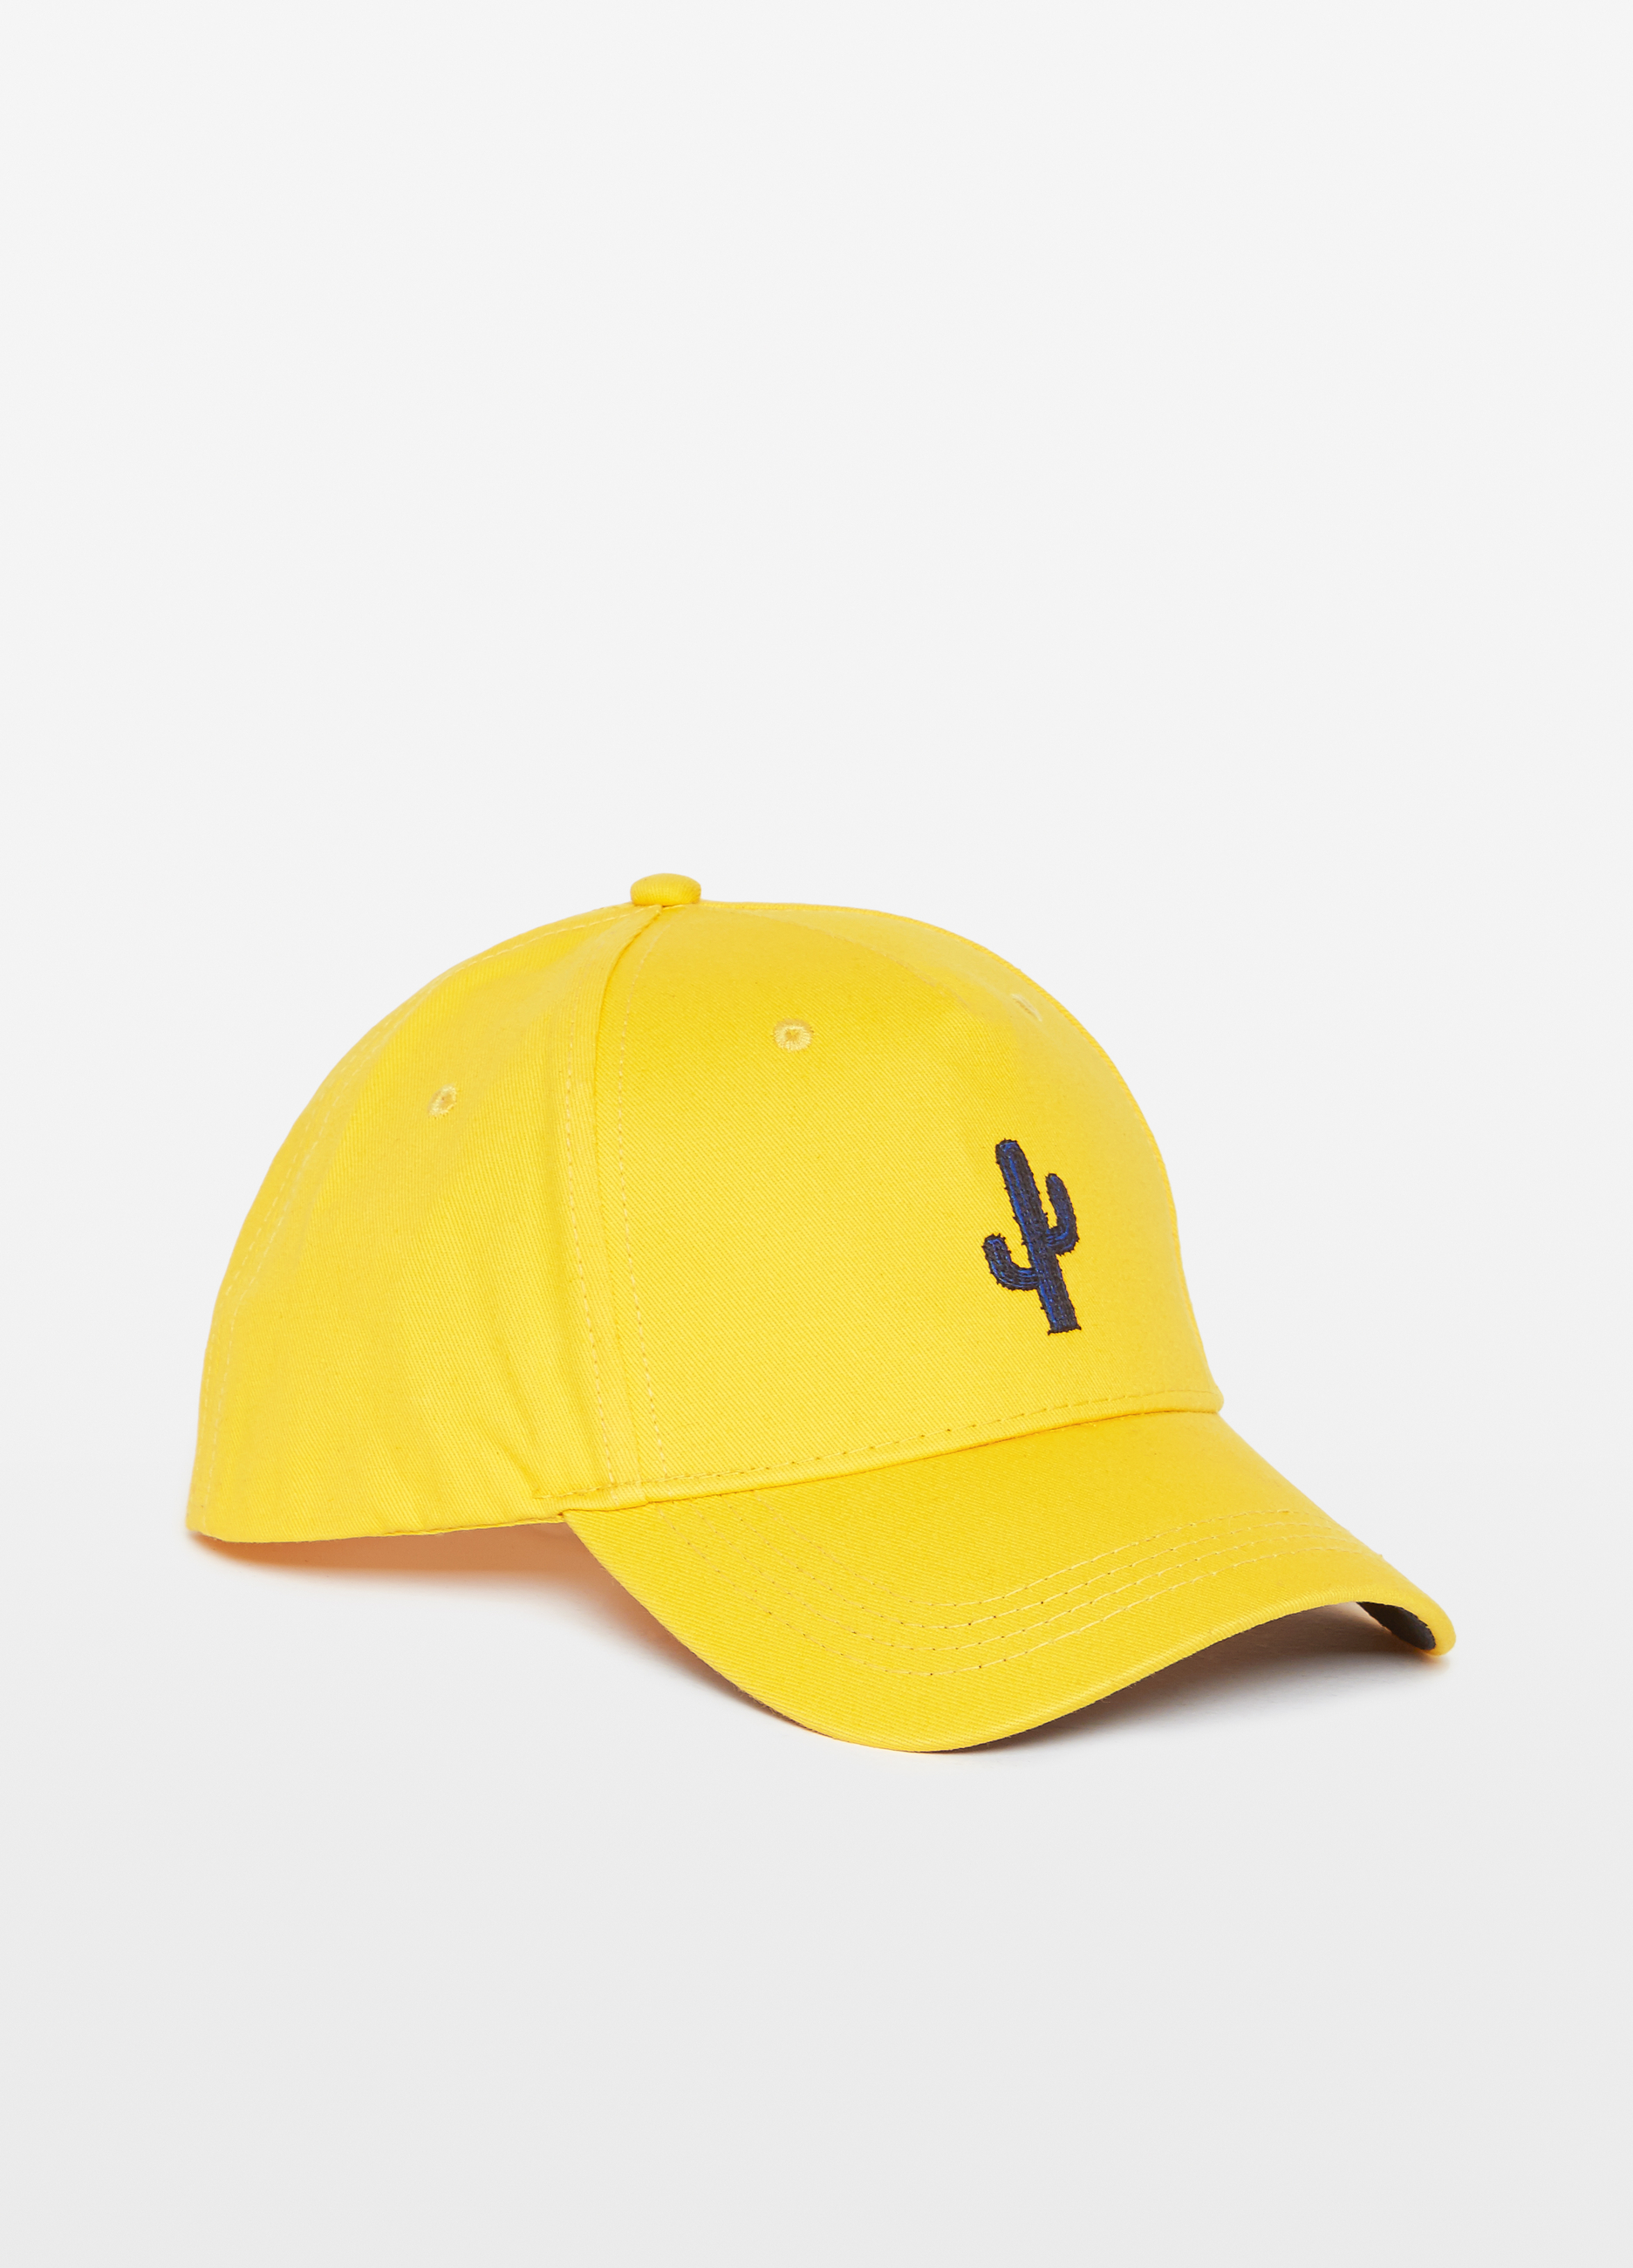 Baseball cap with embroidered cactus  eeeef026395